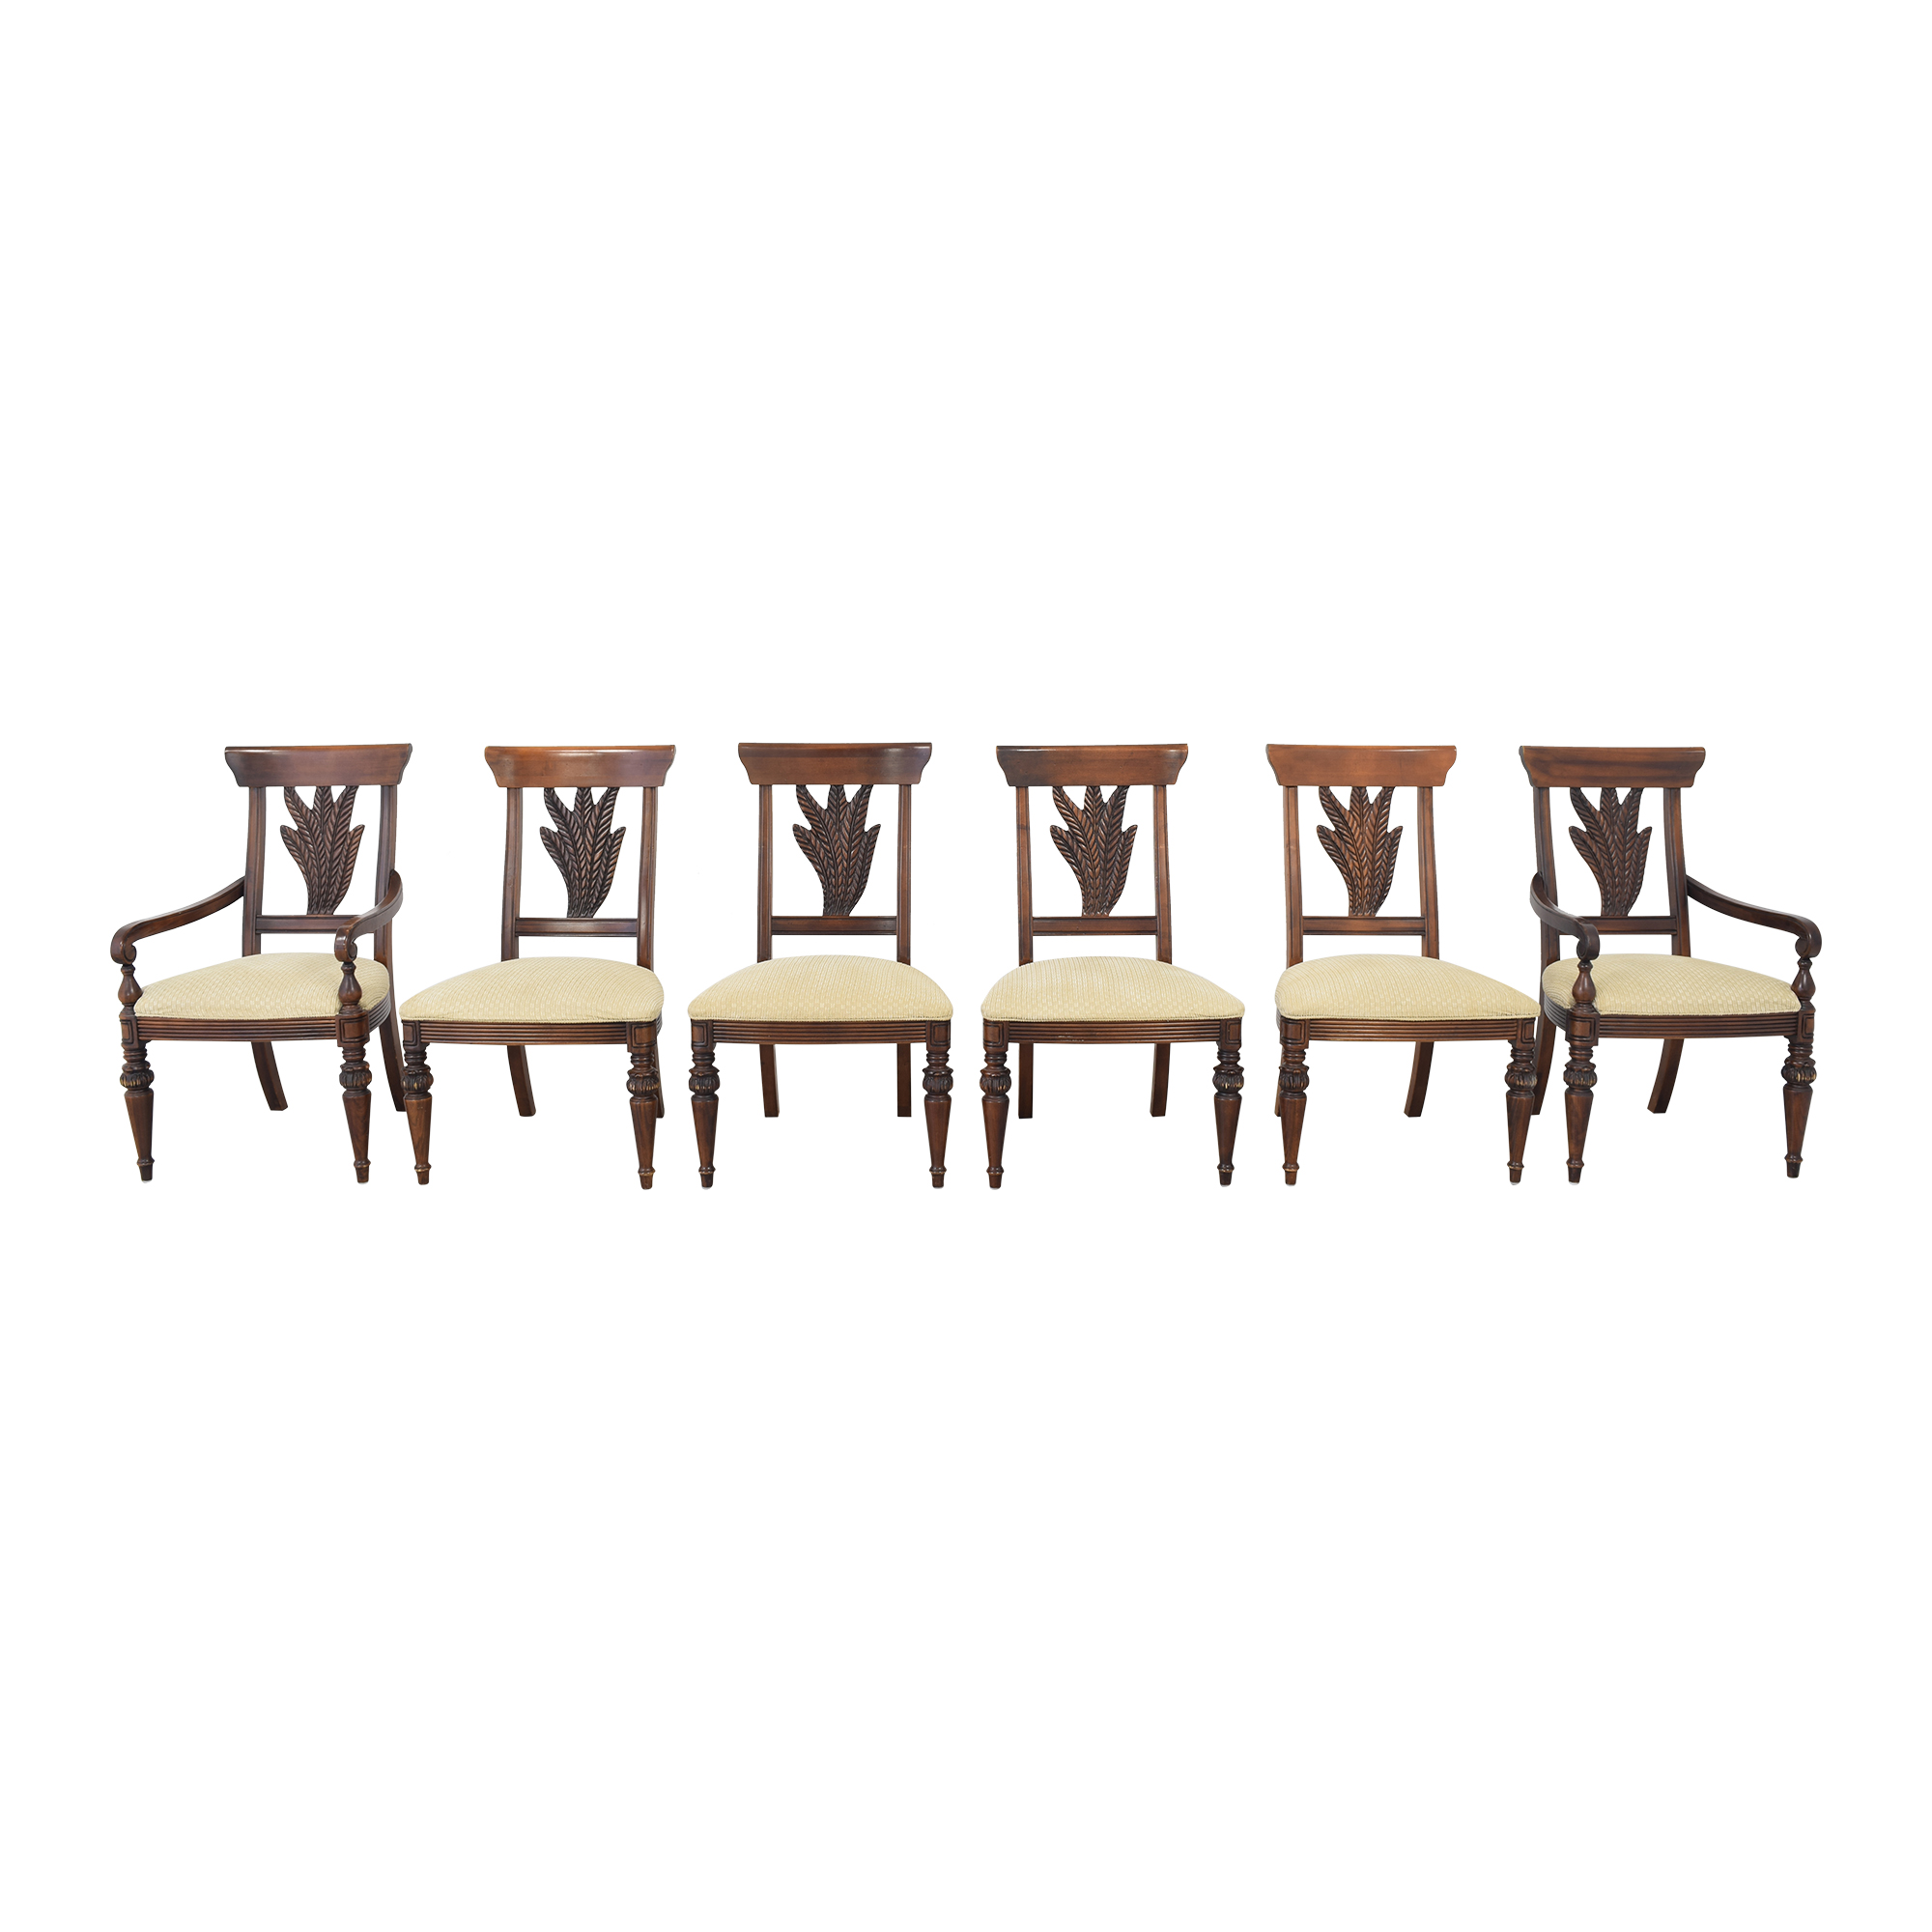 Thomasville Ernest Hemingway Collection Dining Chairs Thomasville